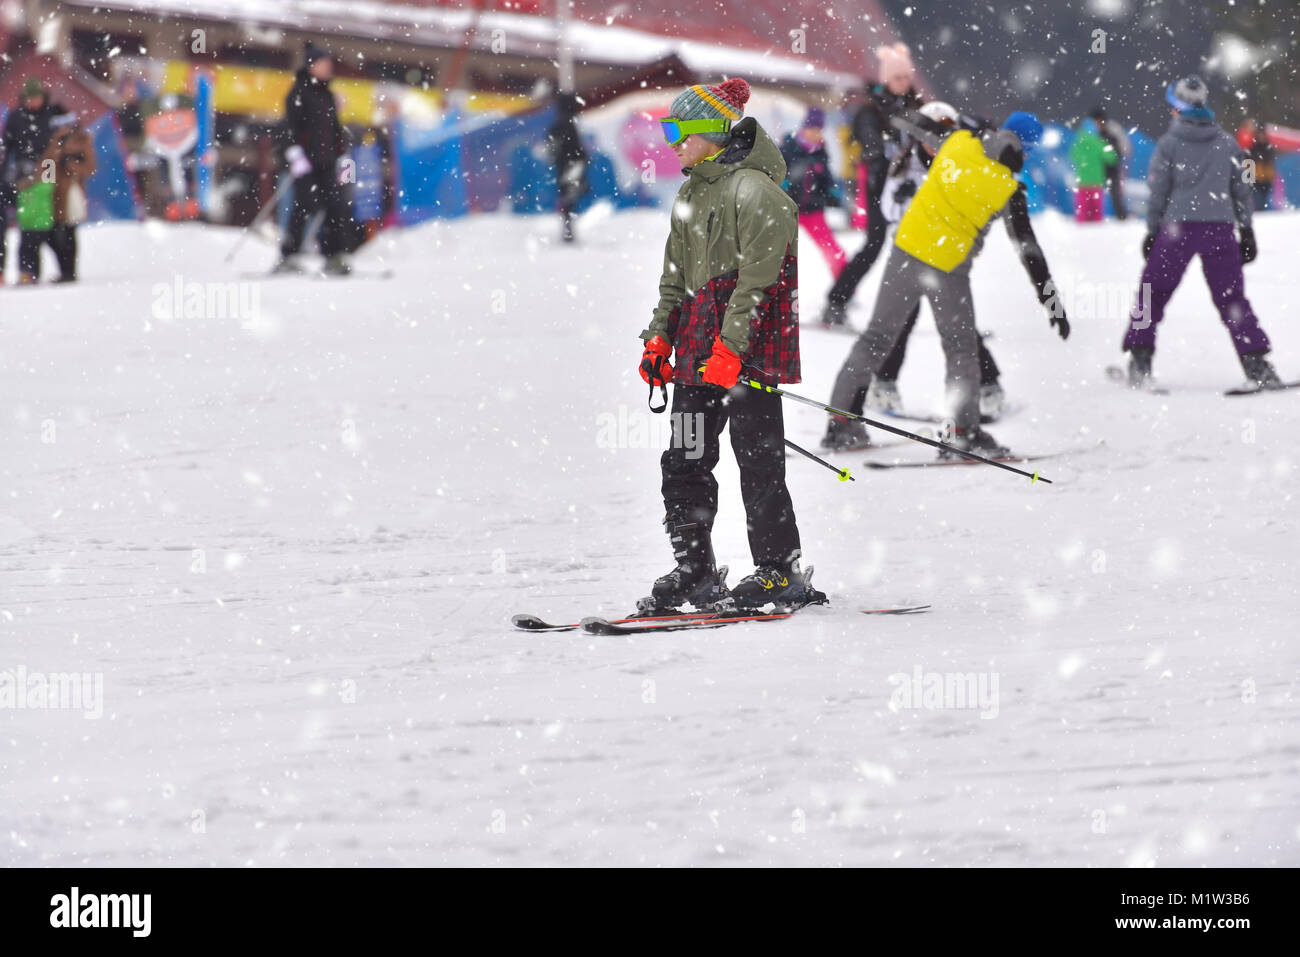 Young man skiing downhill with people in the background, snowy day - Stock Image